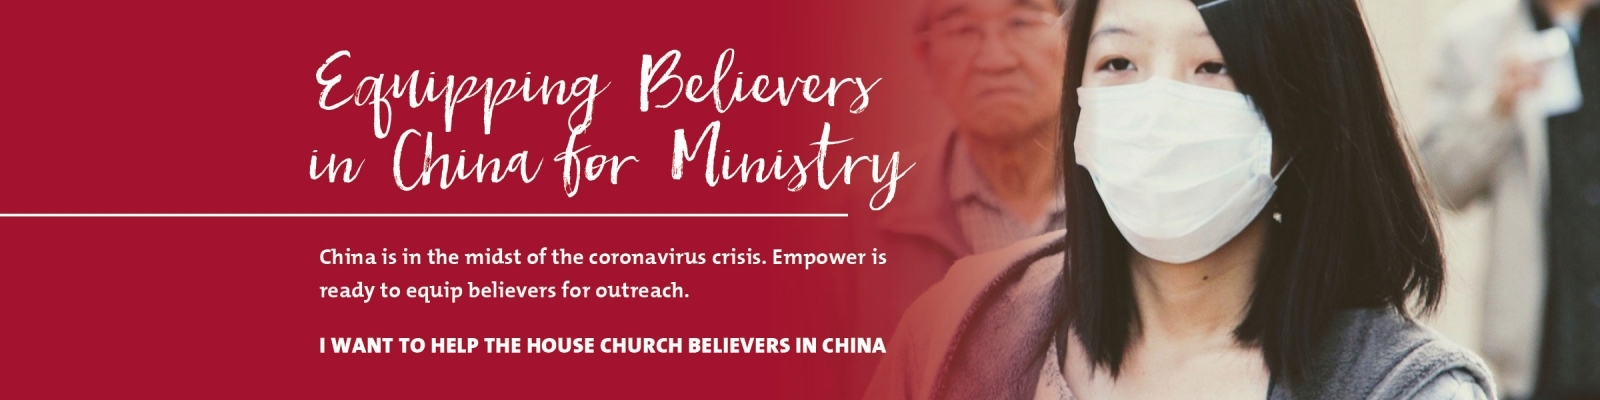 compassionate assistance equip national church believers sick poor